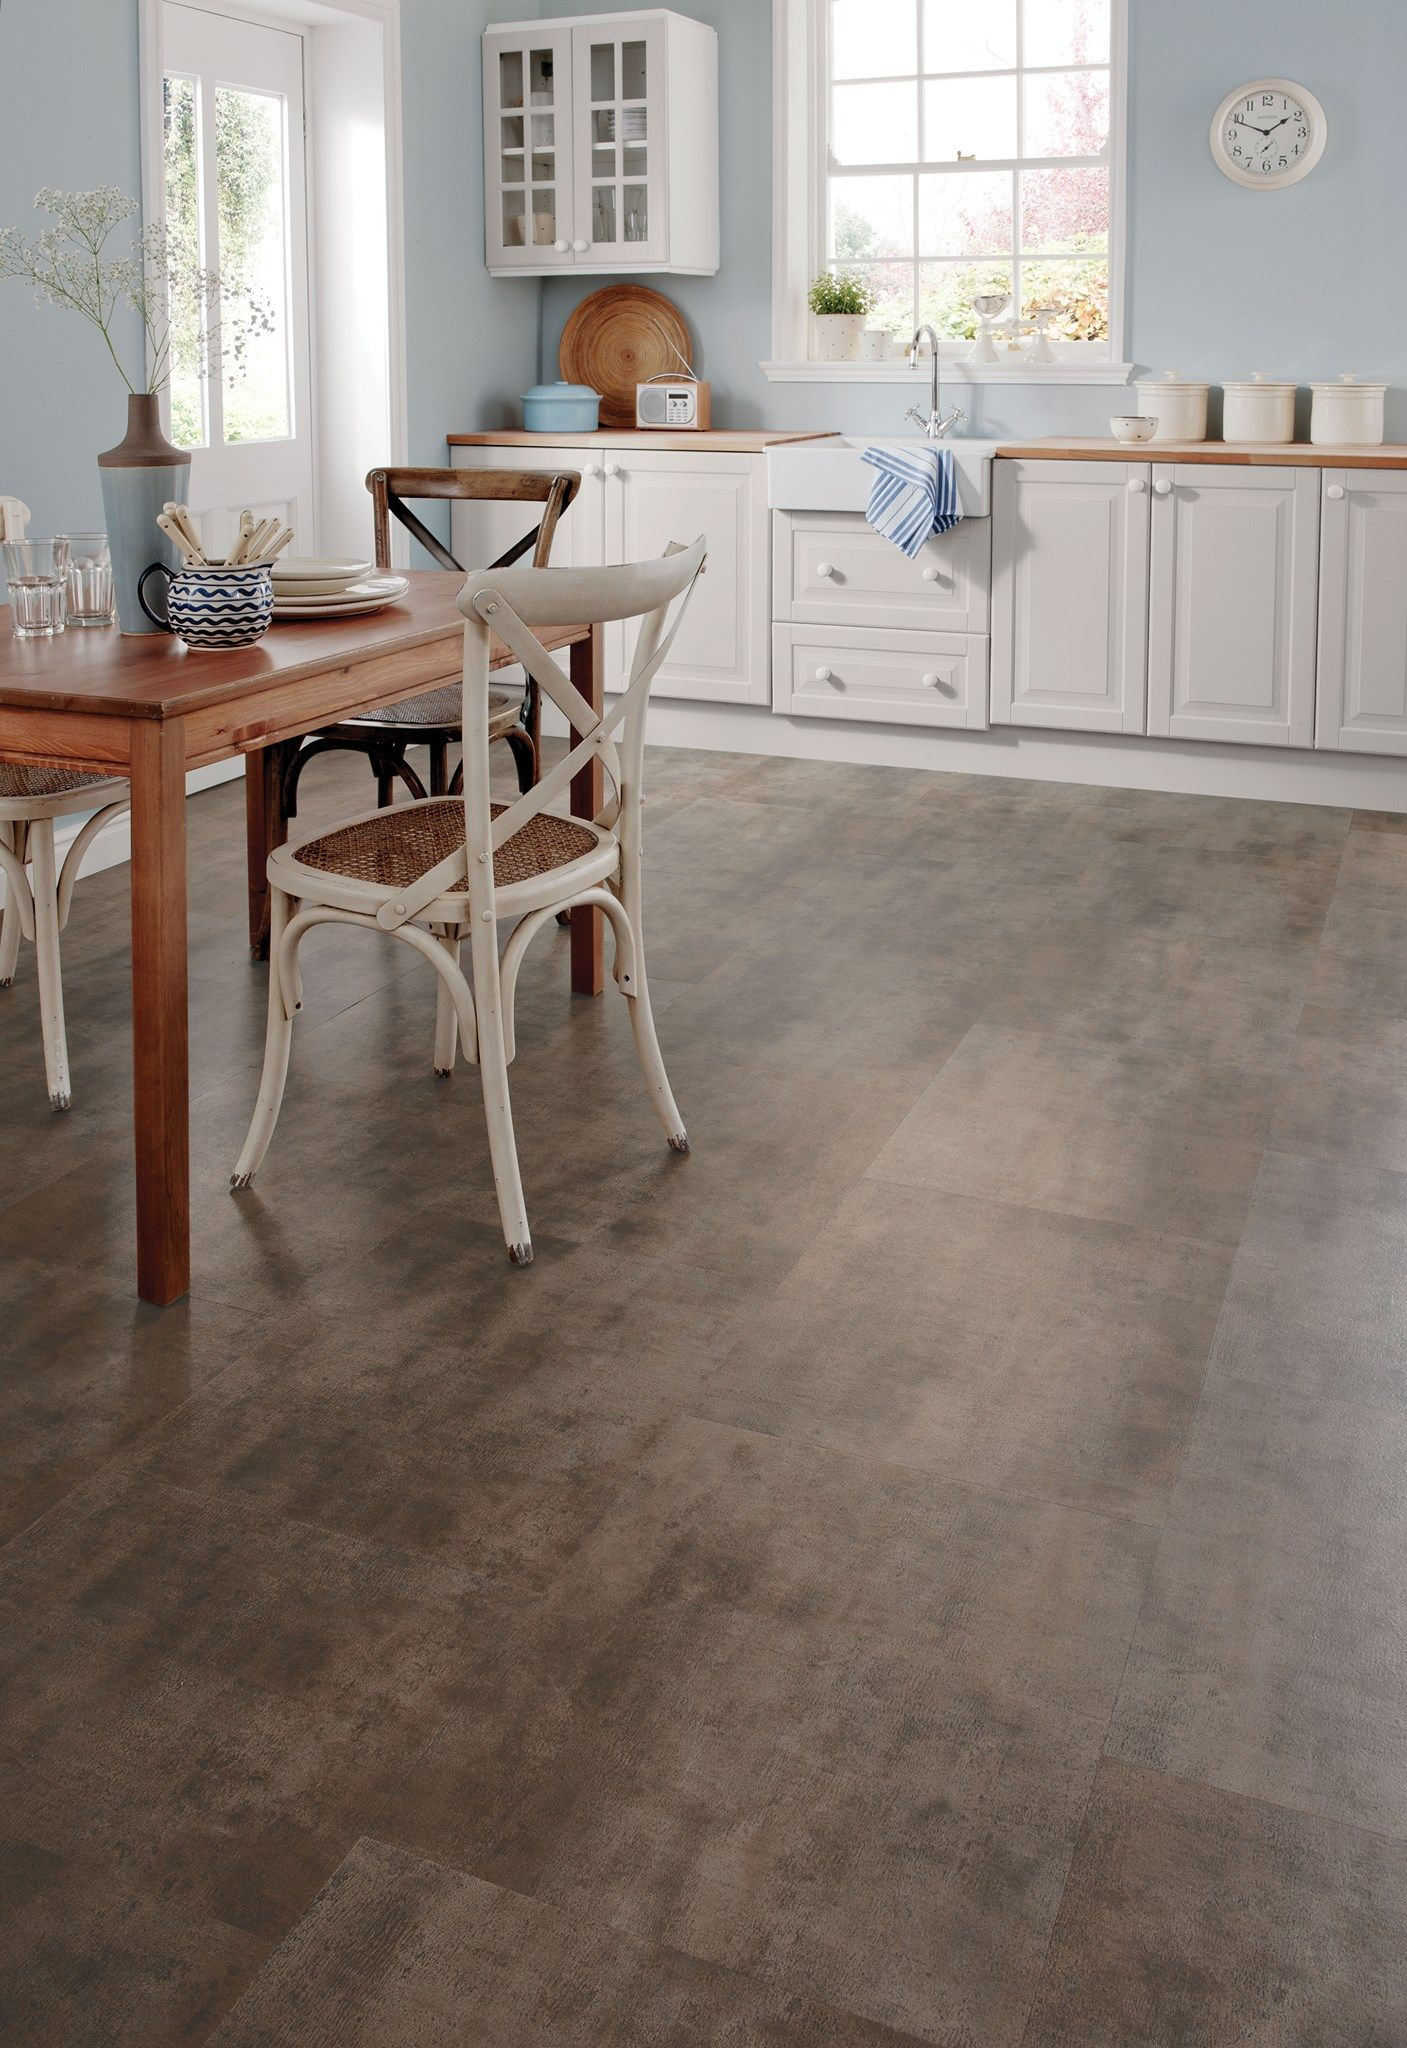 Our Mid Brown Karndean Arizona Llt200 Floor Tile Is Perfect For A